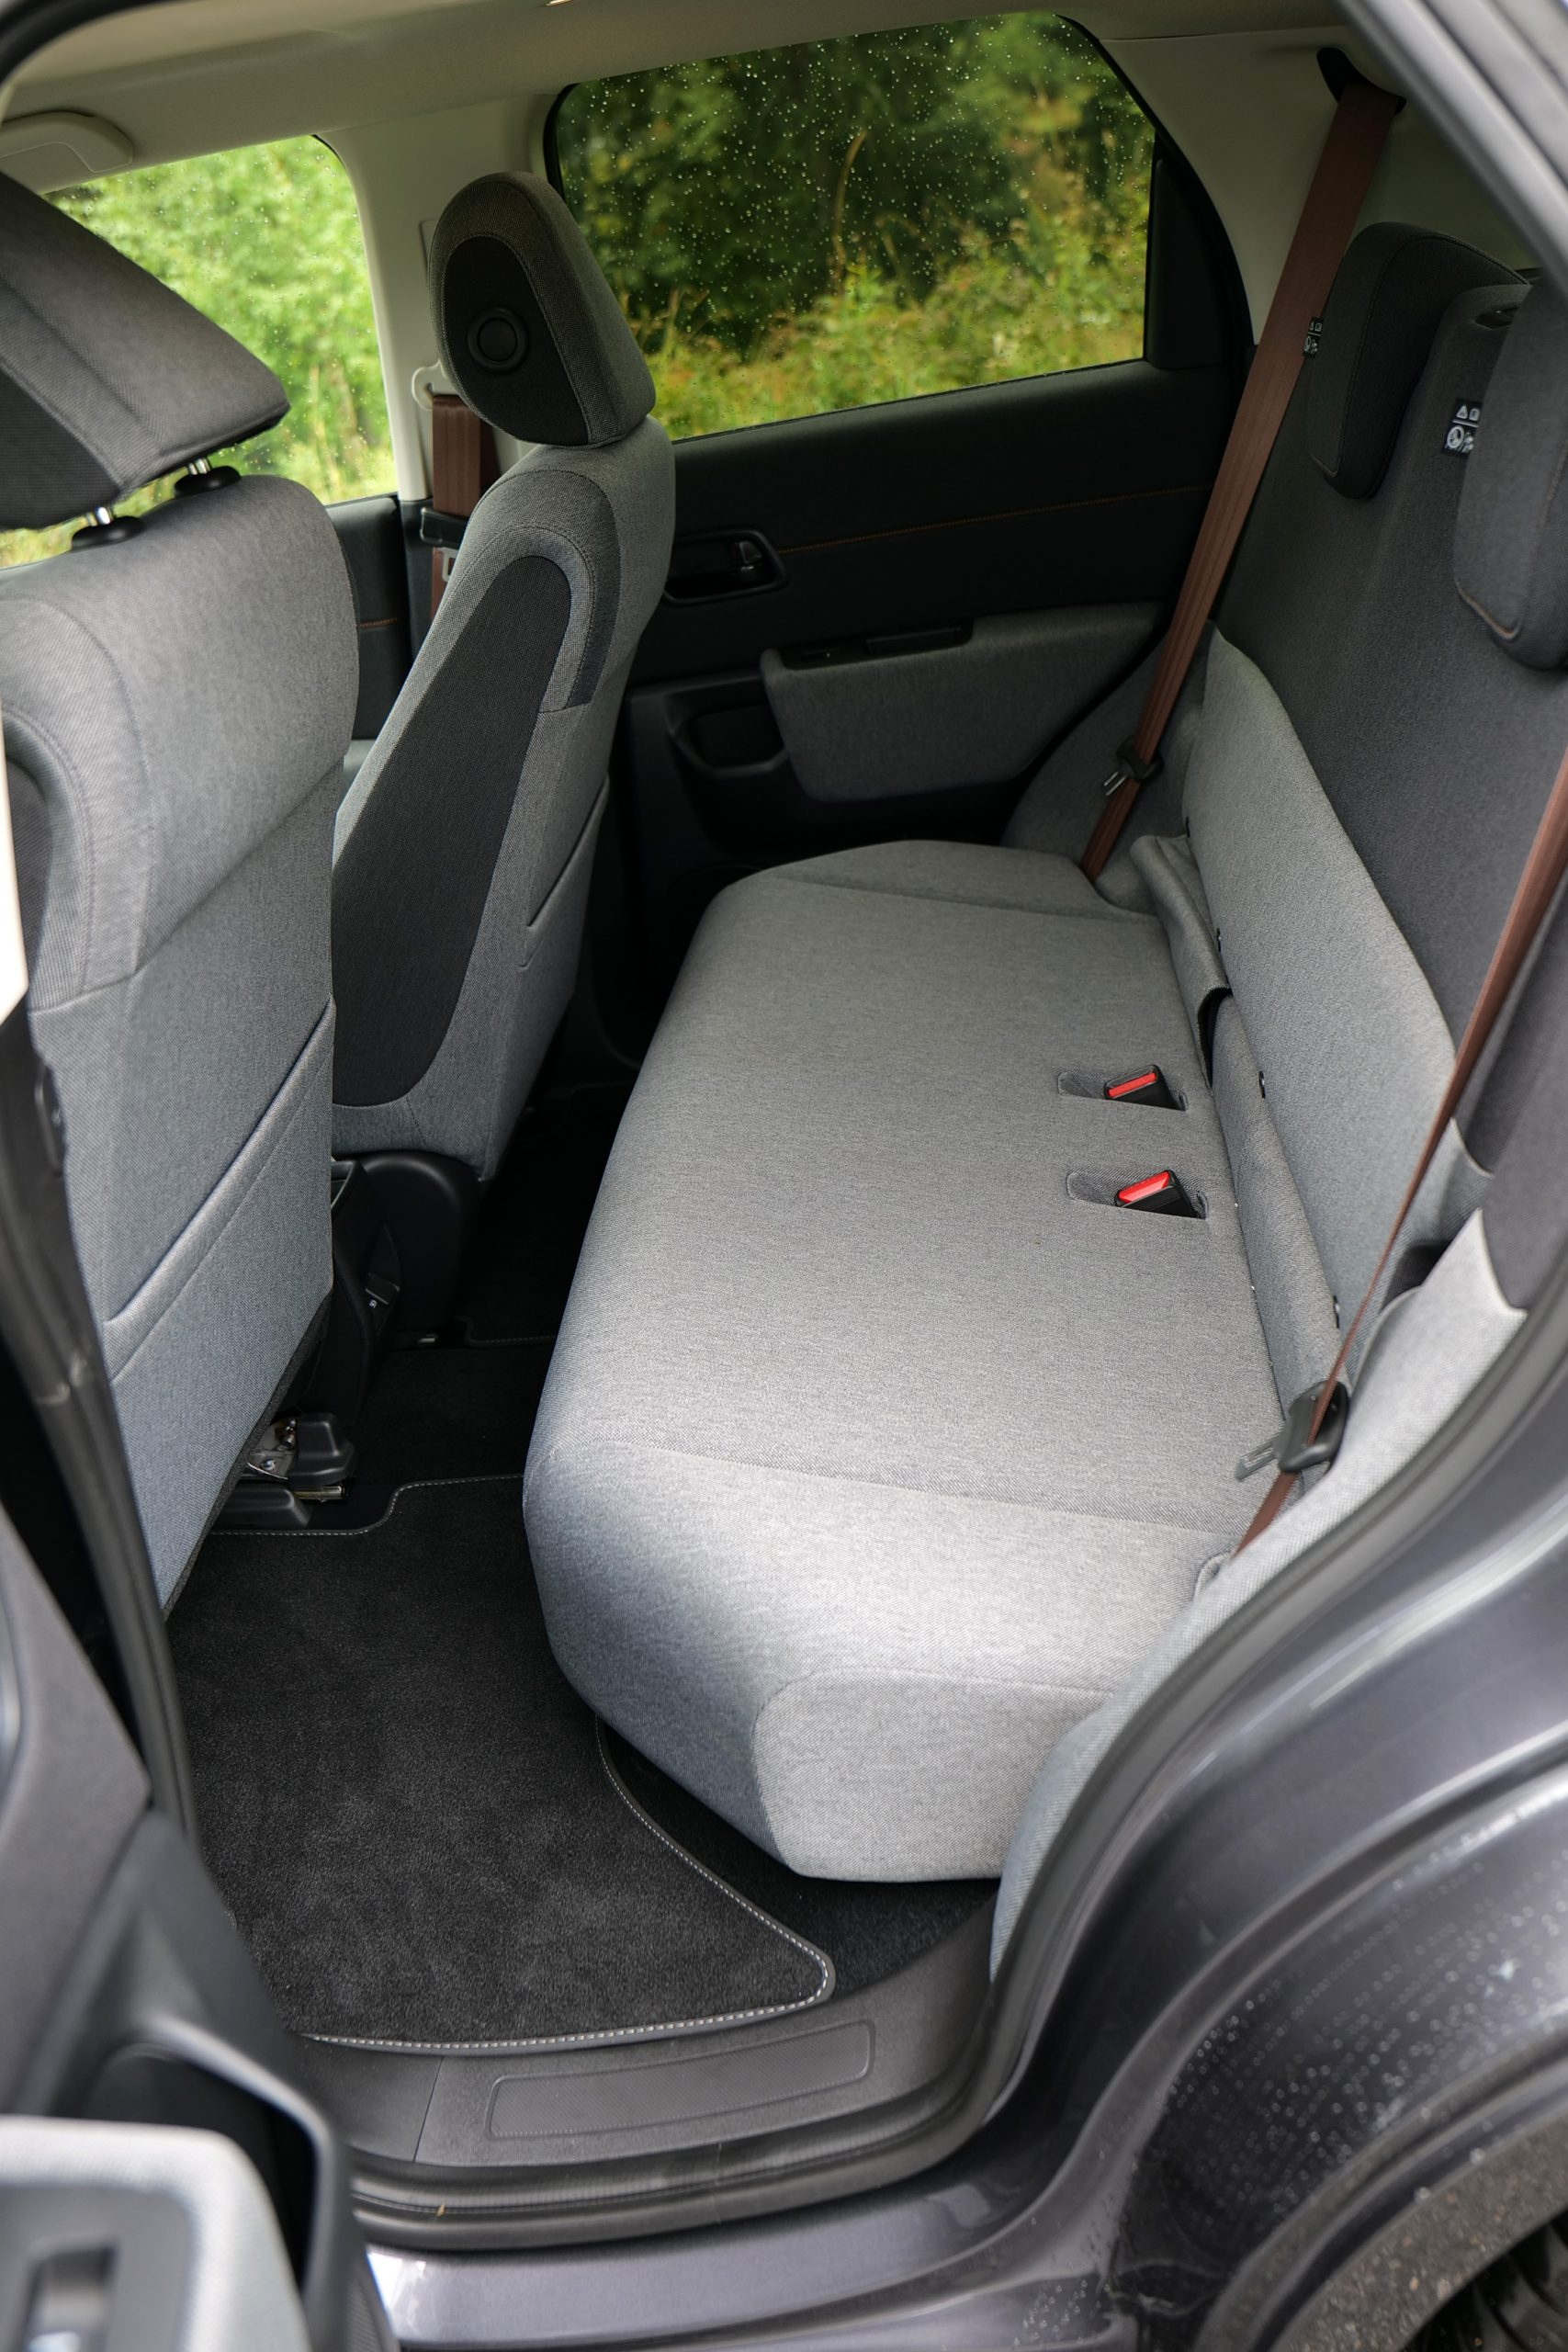 Honda e backseats